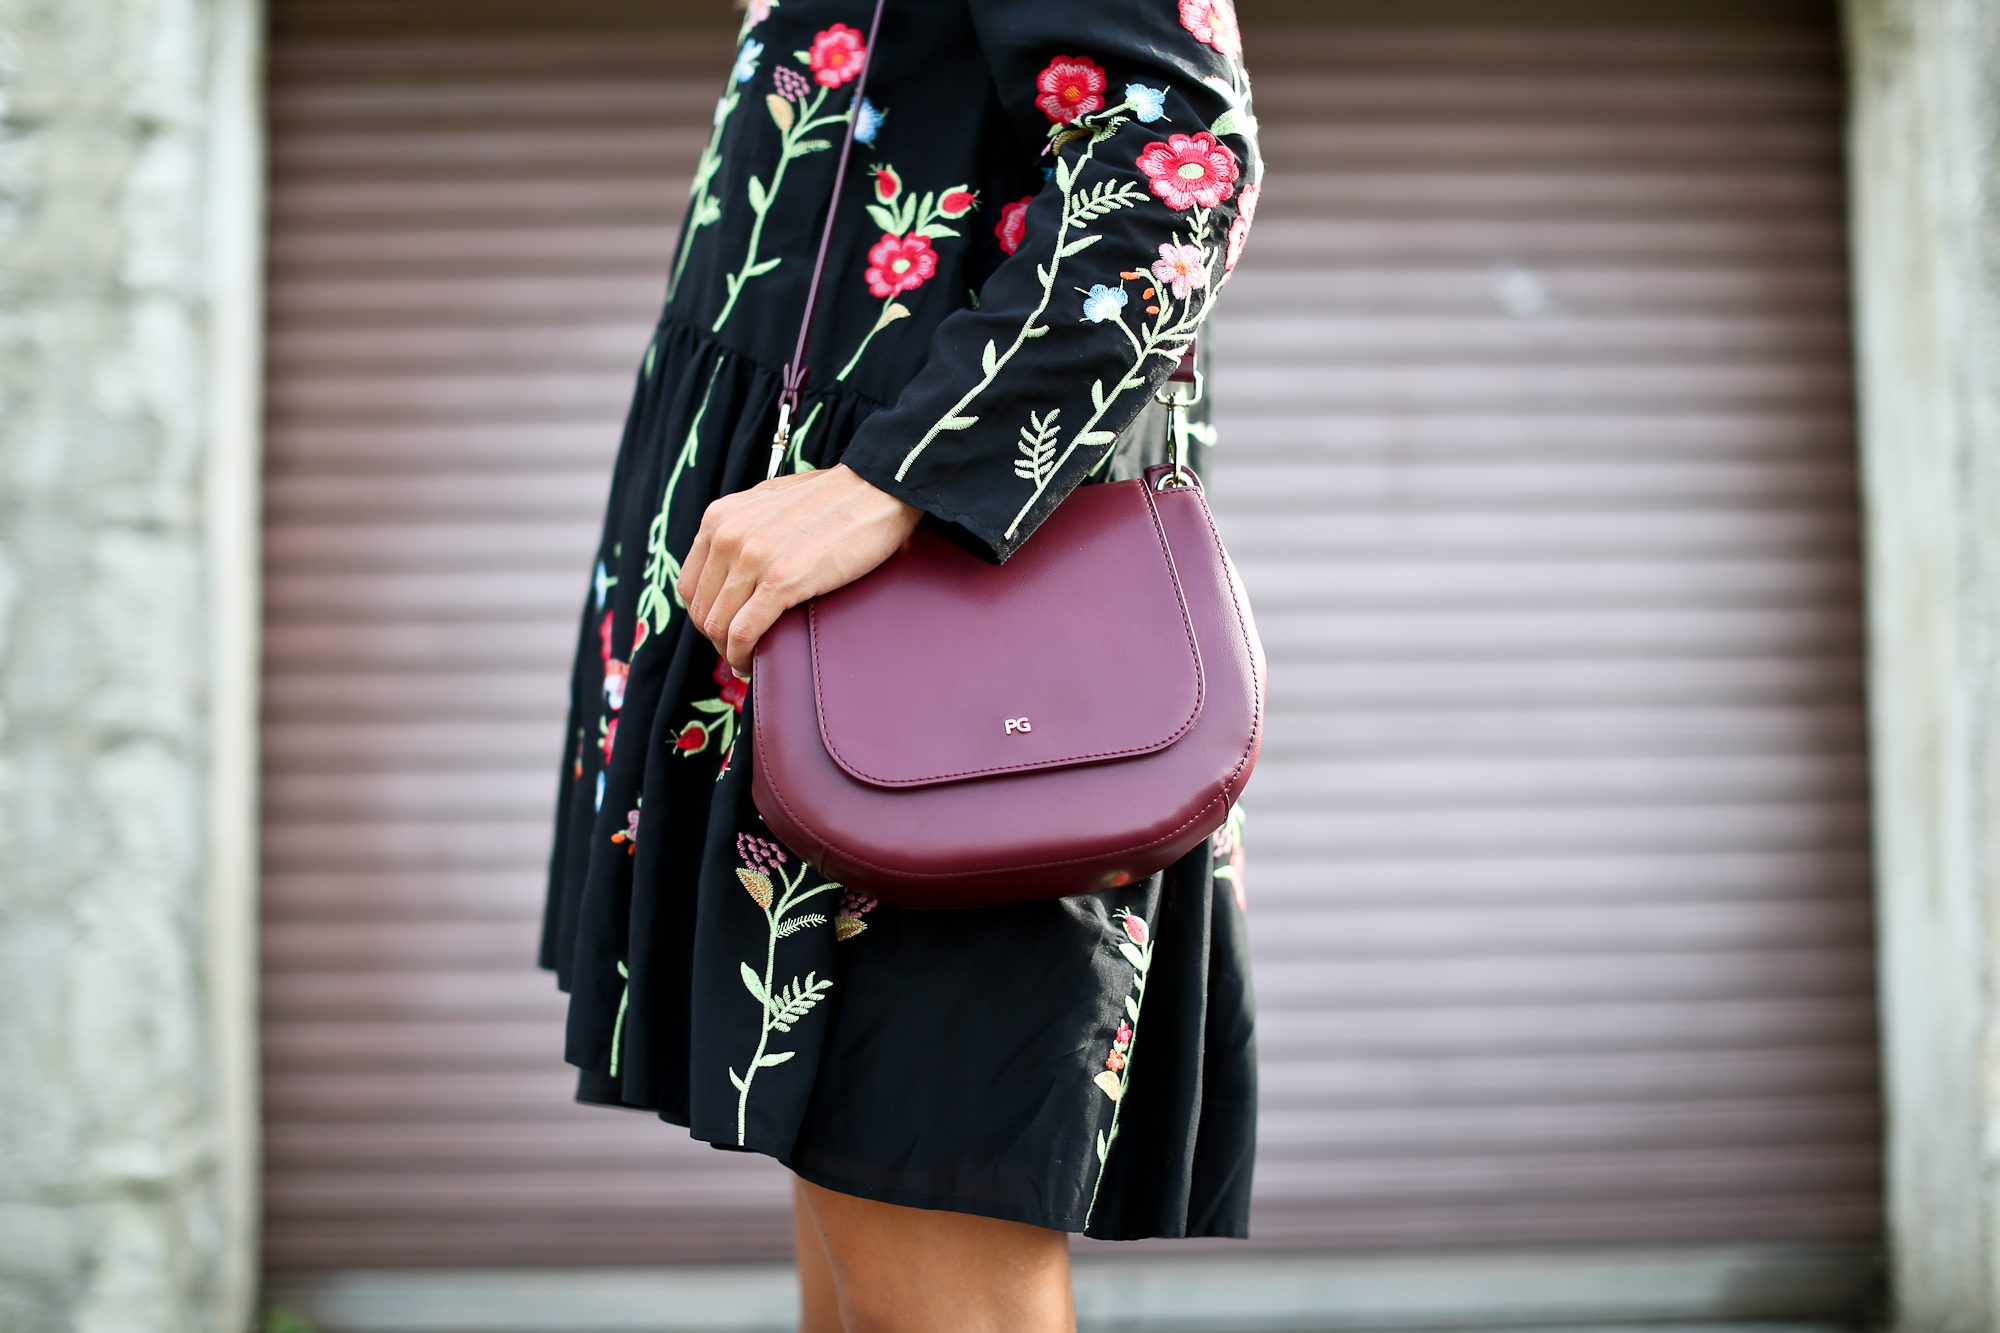 Clochet_streetstyle_zara_embroided_littleblackdress_purificaciongarcia_bandolera_westfalia-4